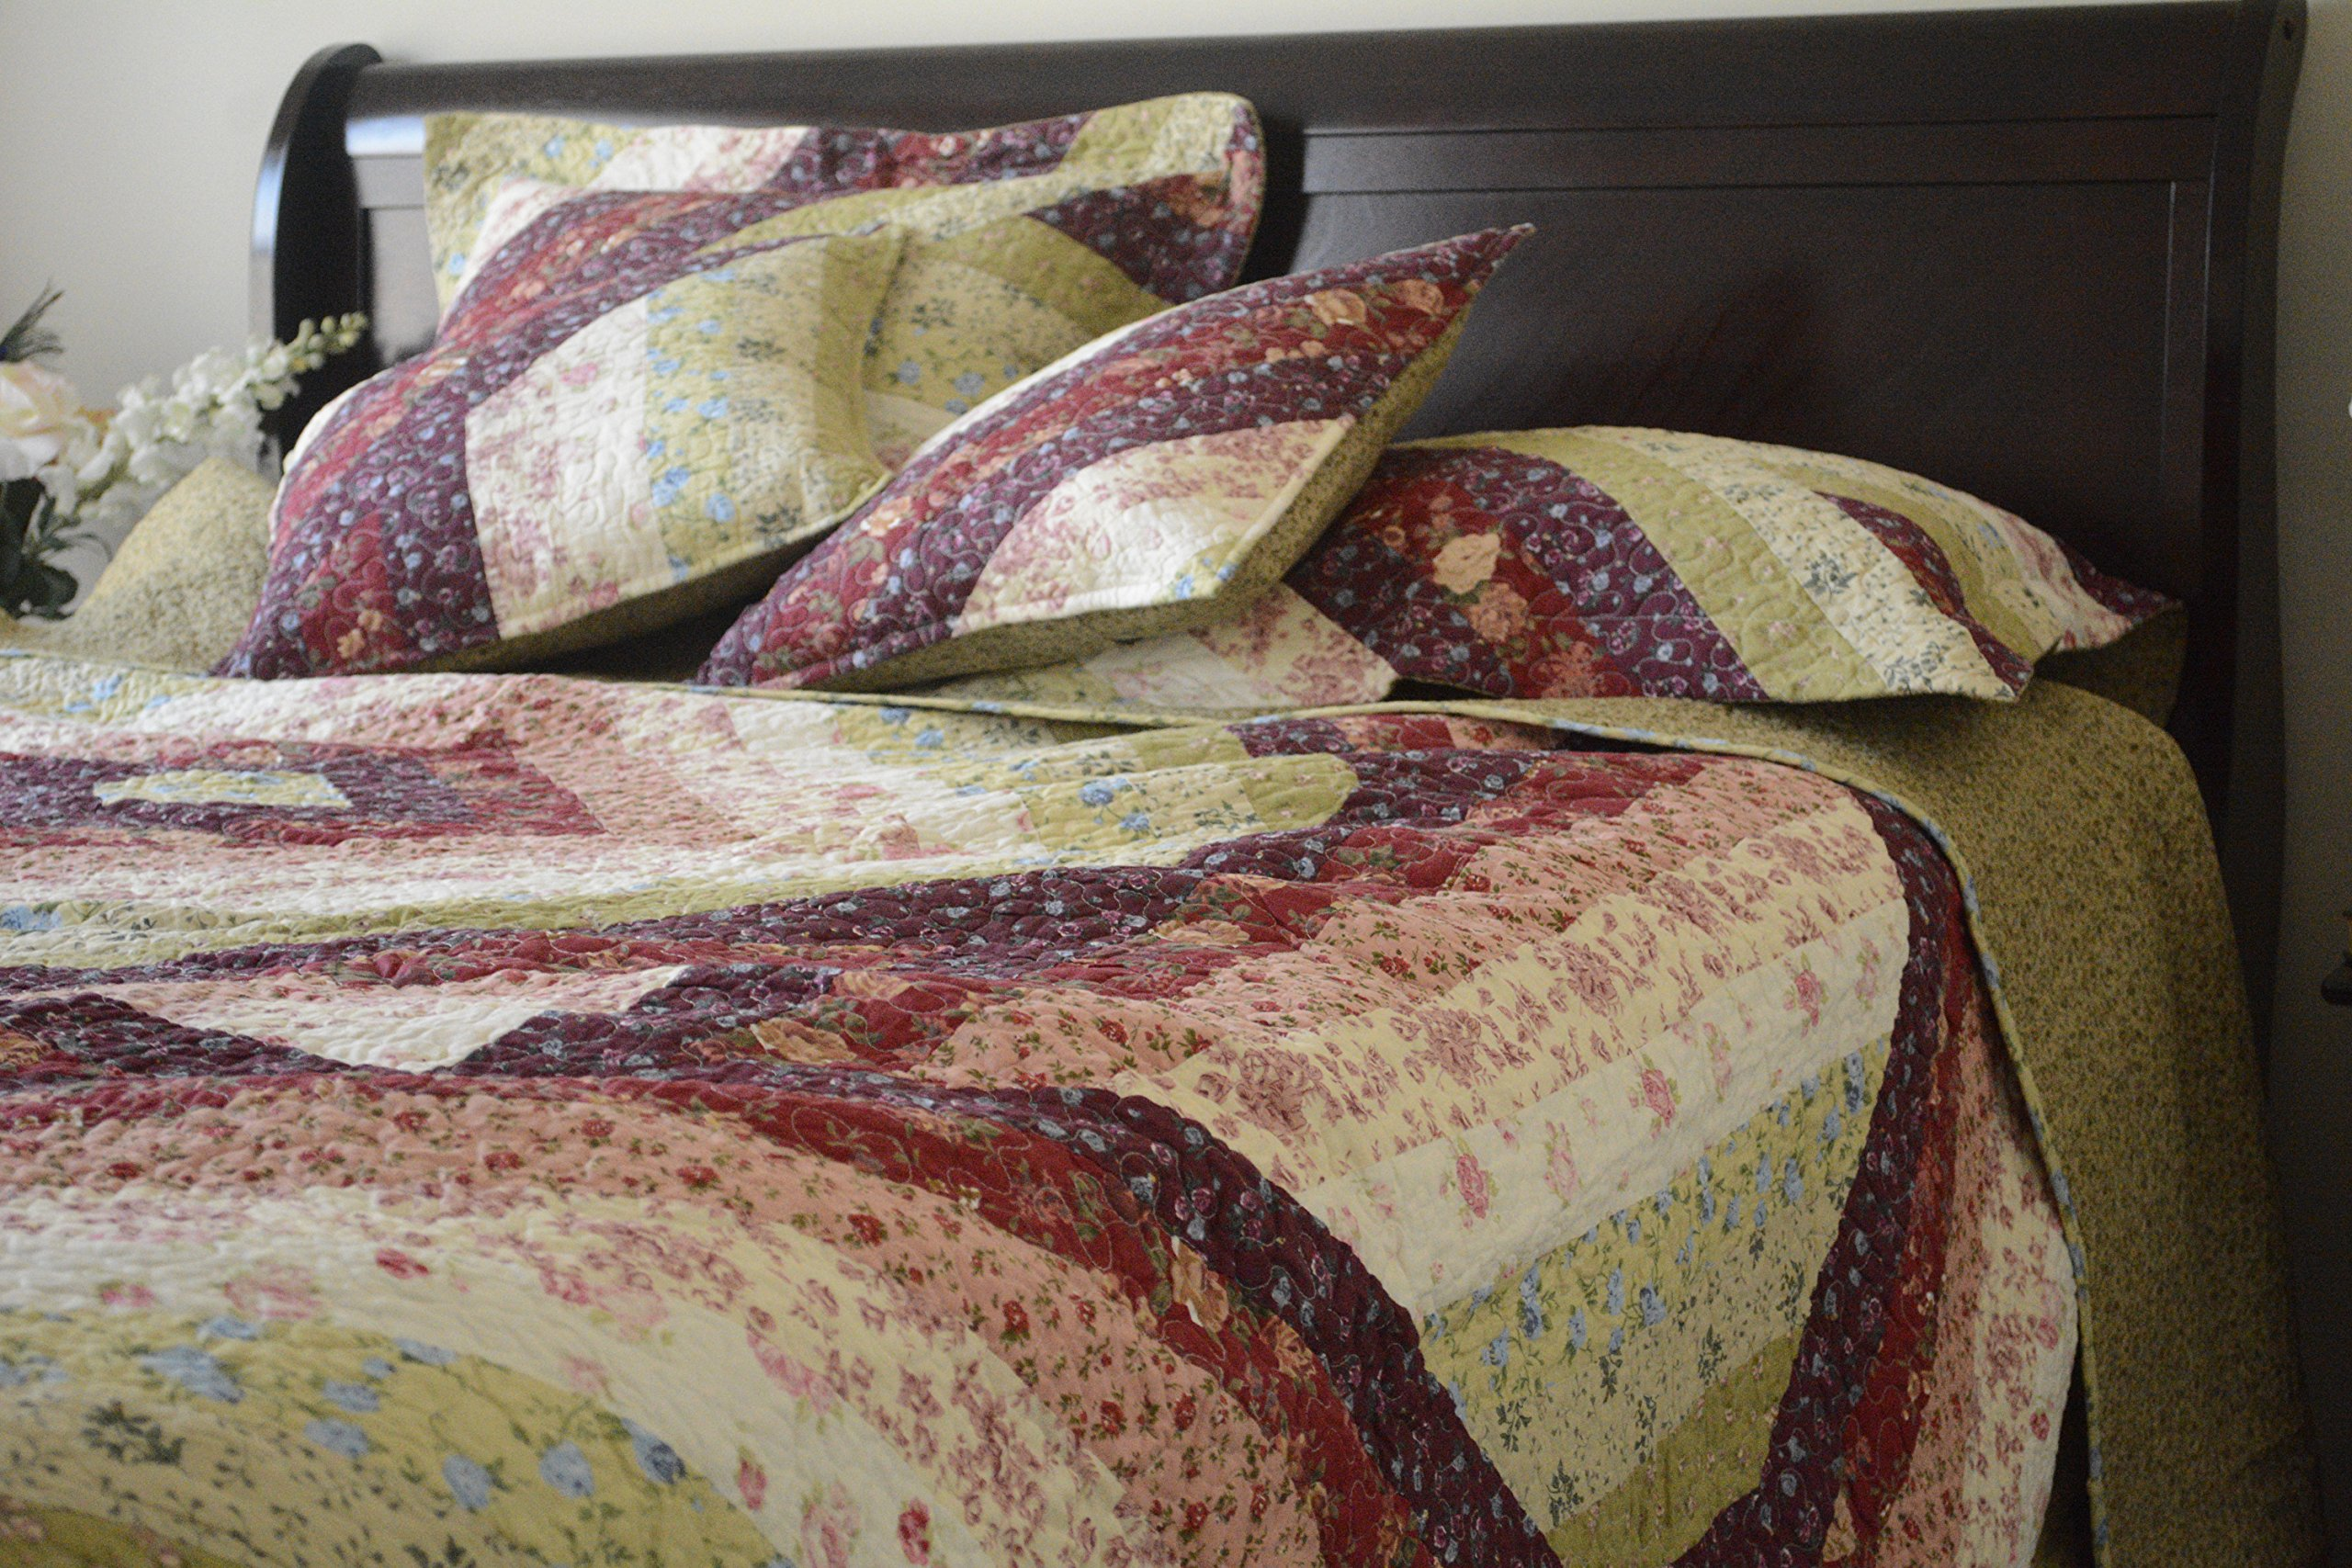 DaDa Bedding Bohemian Reversible Floral Garden Cotton Patchwork Quilted Coverlet Bedspread Set - Bright Vibrant Multi-Colorful Light Yellow Red Burgundy Garden Diamond Print - King - 5-Pieces